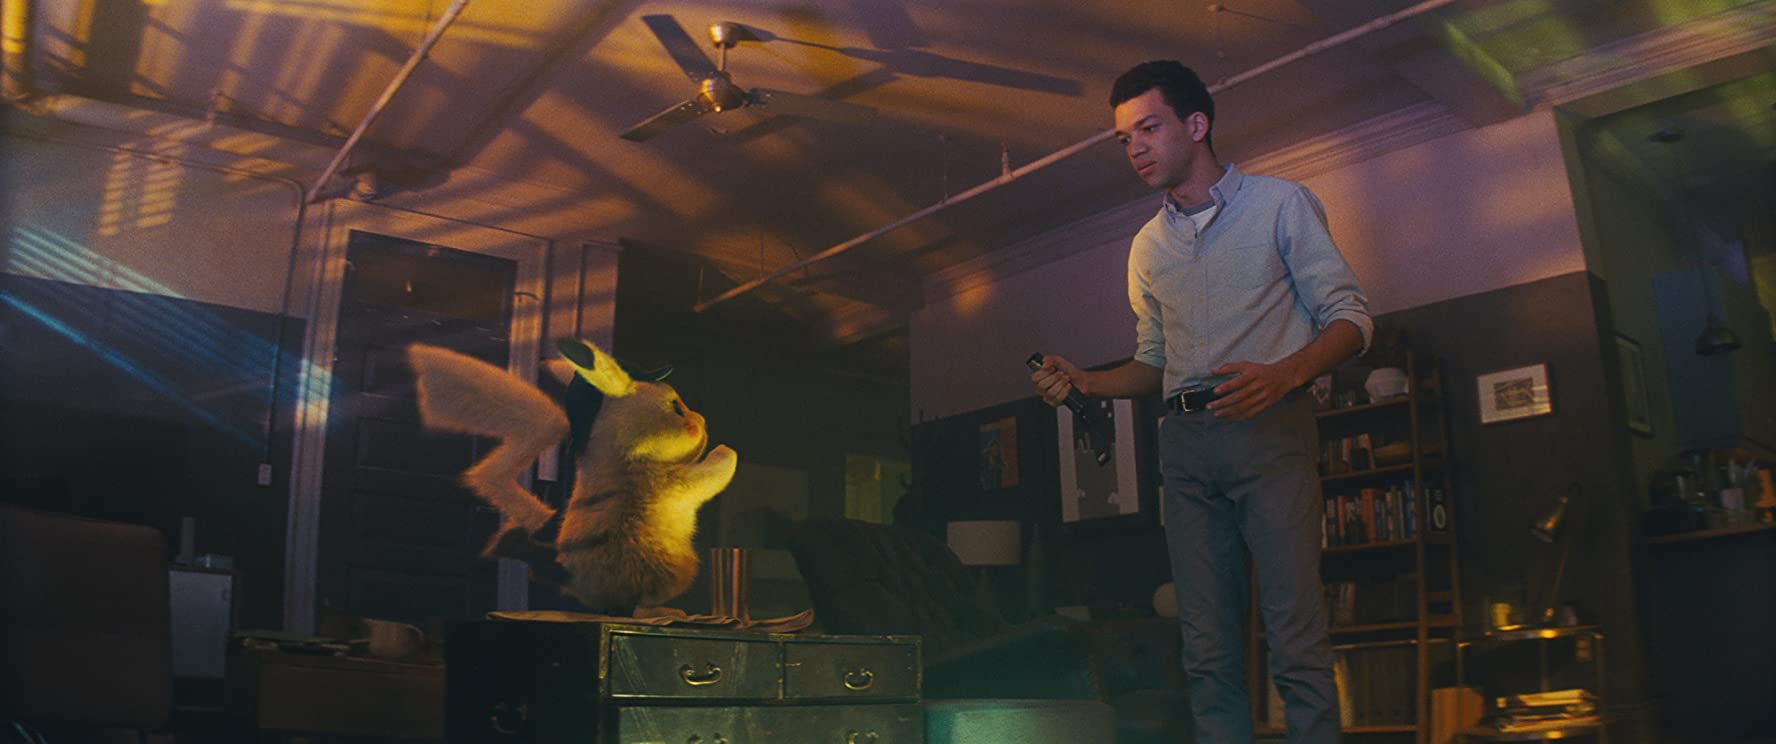 Ryan Reynolds and Justice Smith in Pokémon Detective Pikachu (2019)